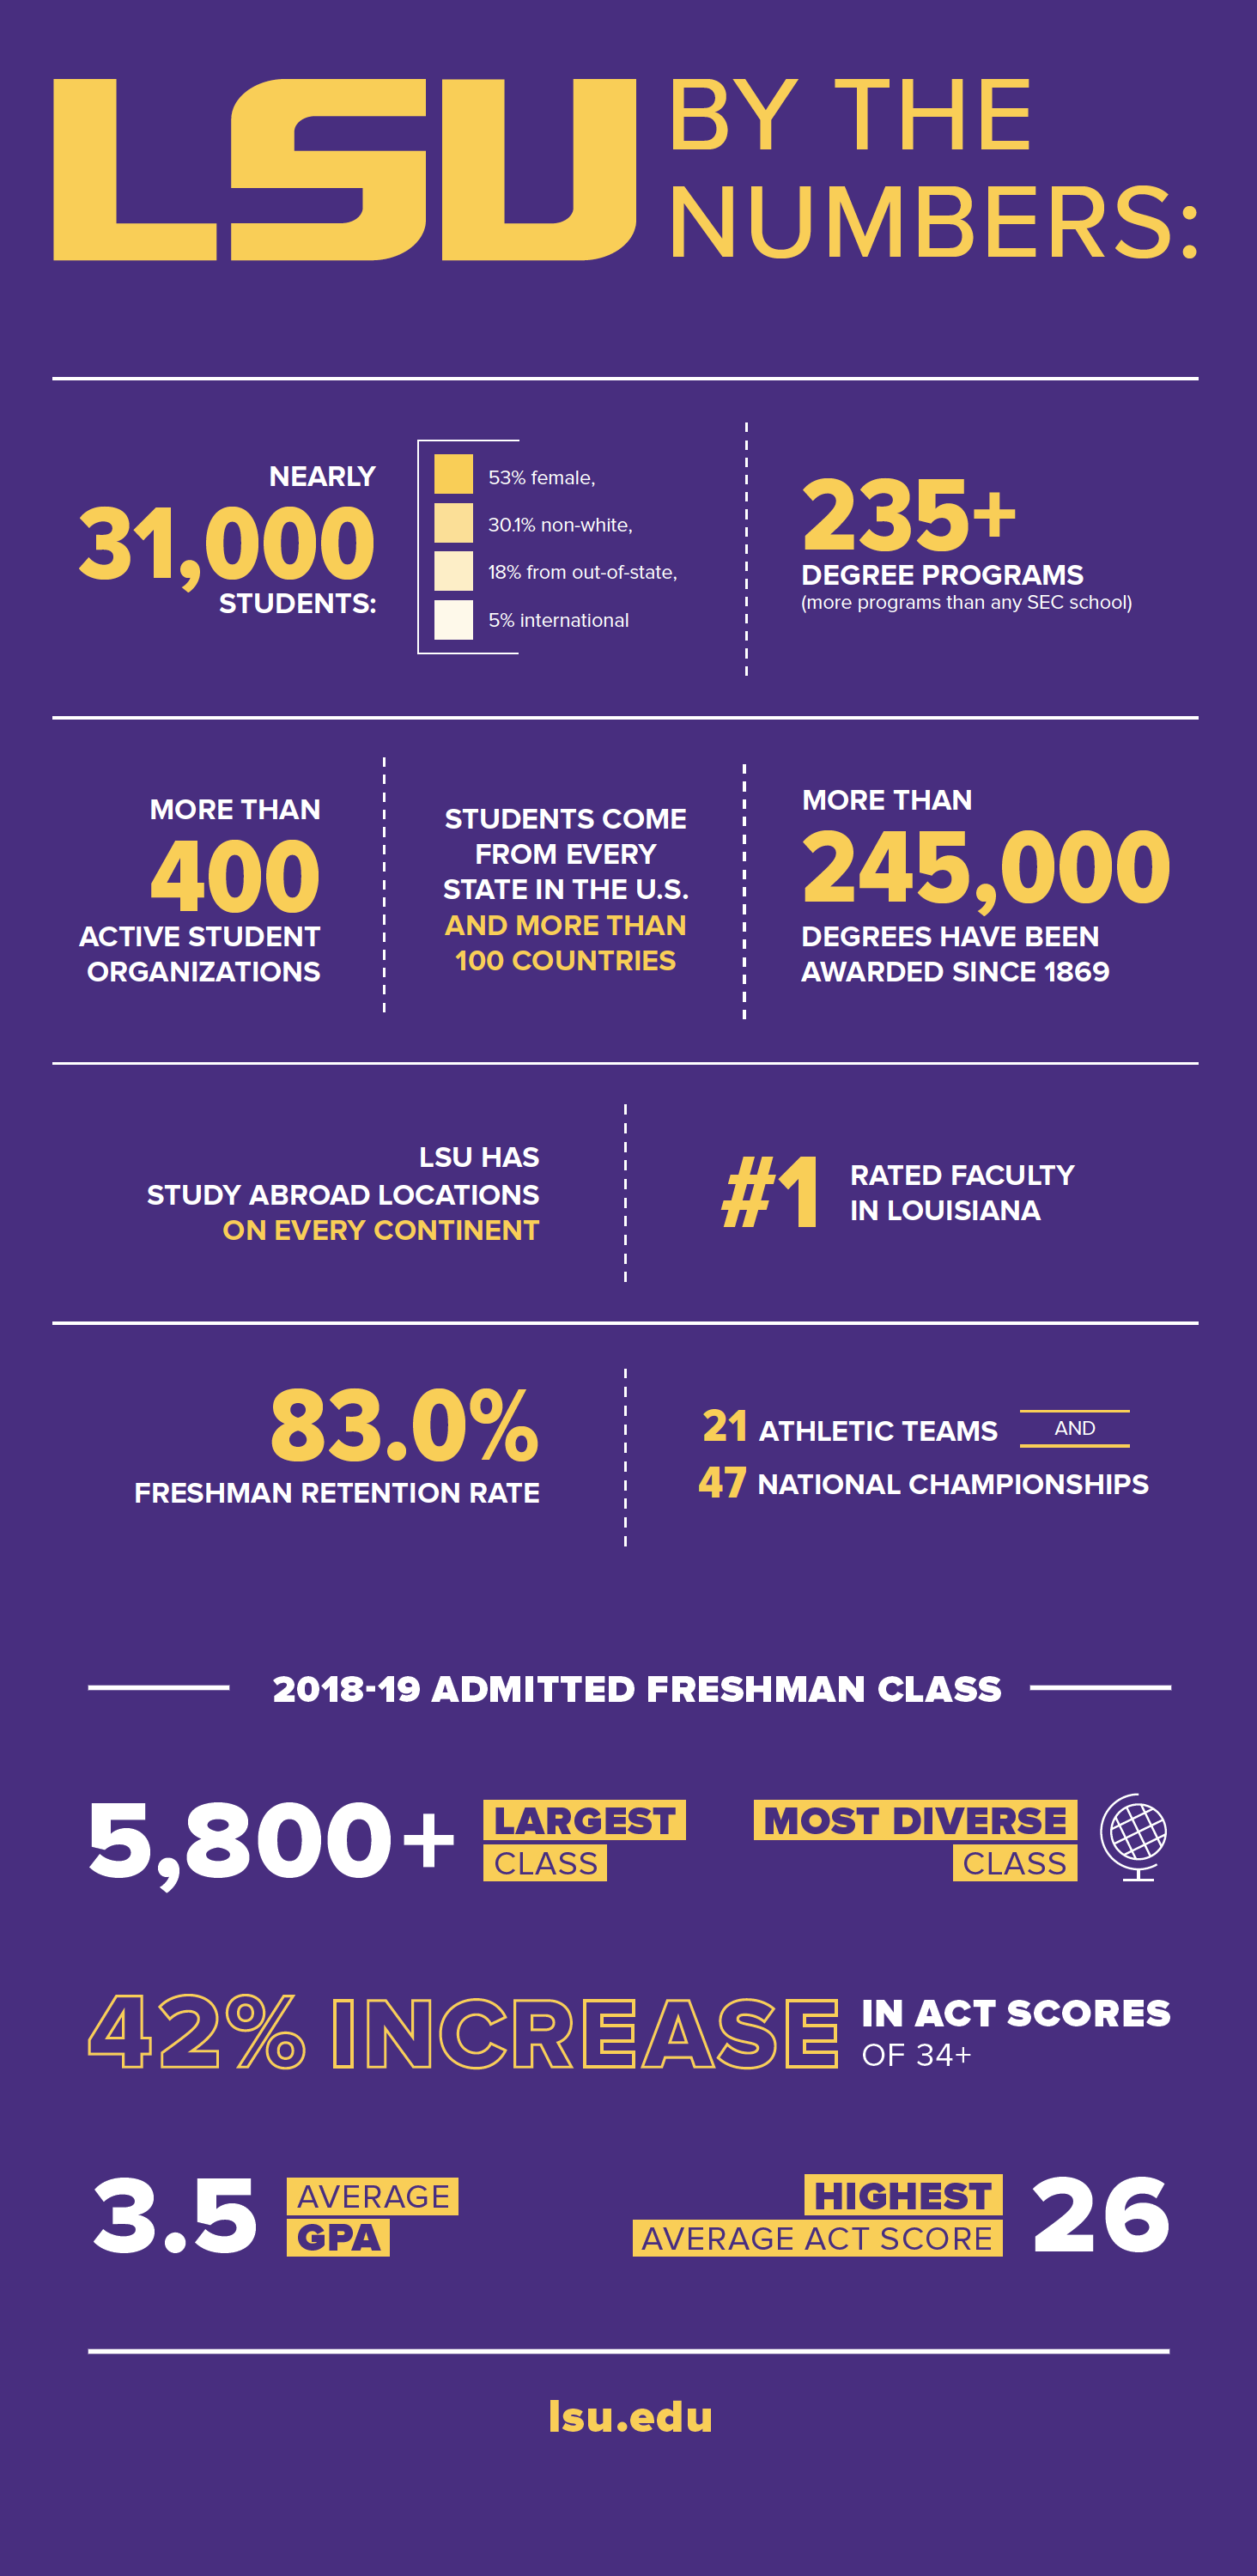 LSU By the Numbers infographic